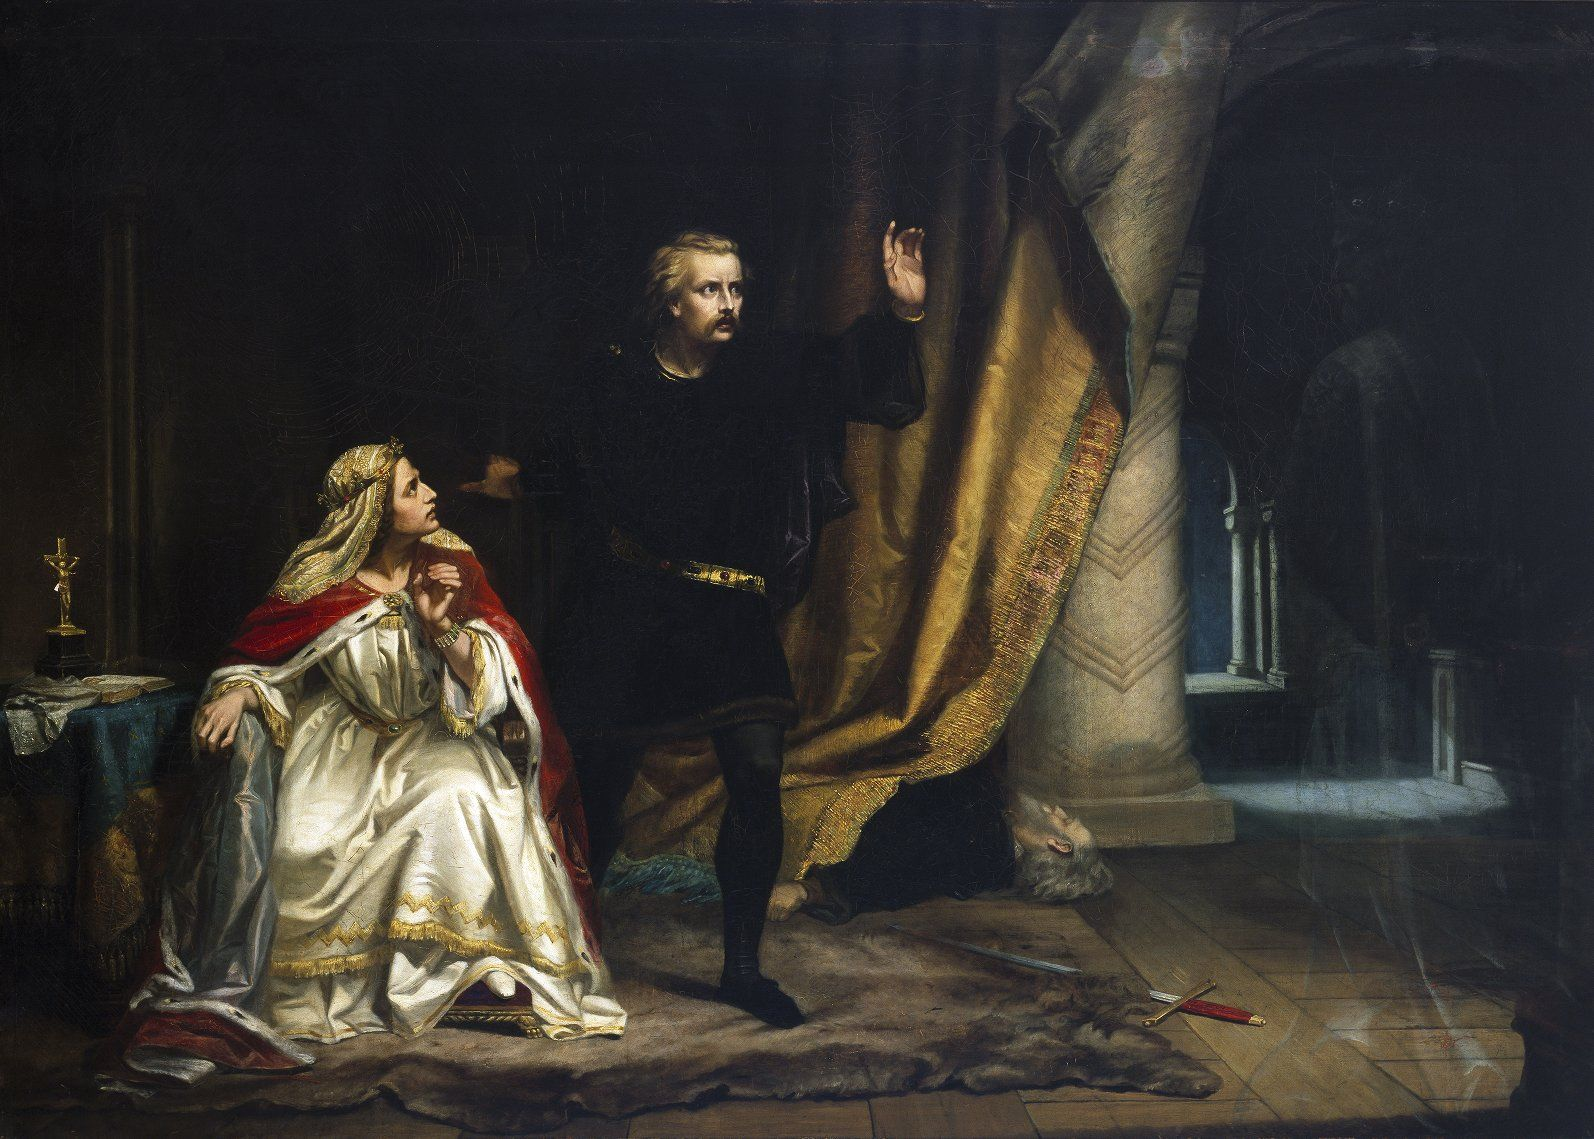 hamlet and mother gertrude In william shakespeare 's play hamlet , gertrude is hamlet 's mother and queen of denmark  her relationship with hamlet is somewhat turbulent, since he resents her marrying her husband's brother claudius after he murdered the king (young hamlet's father, king hamlet .